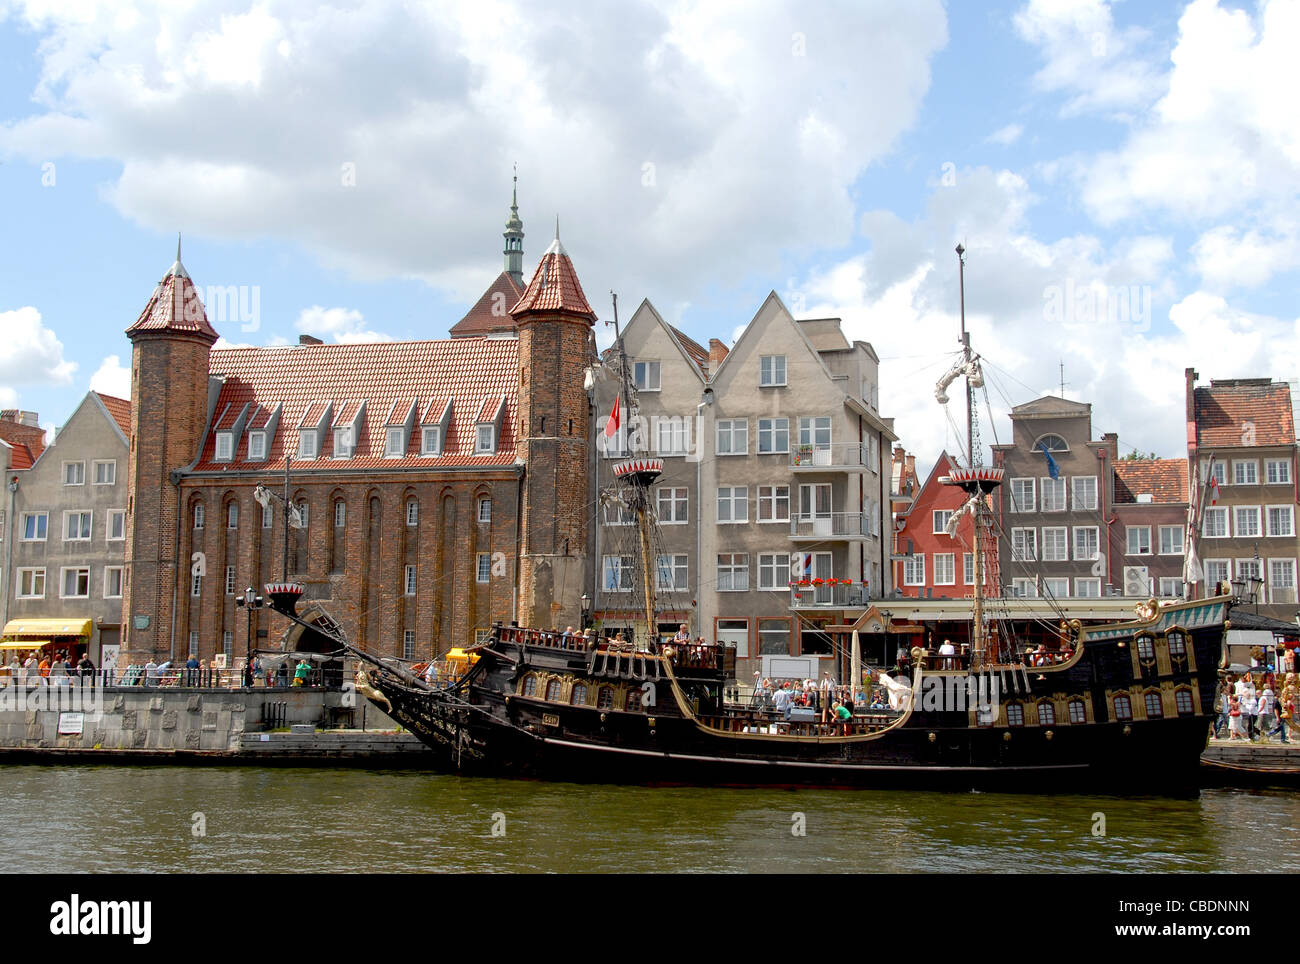 Historic vessel for sightseeing moored at the Motlawa river quay of Stare MIasto, the old town of Gdansk, Danzig, - Stock Image